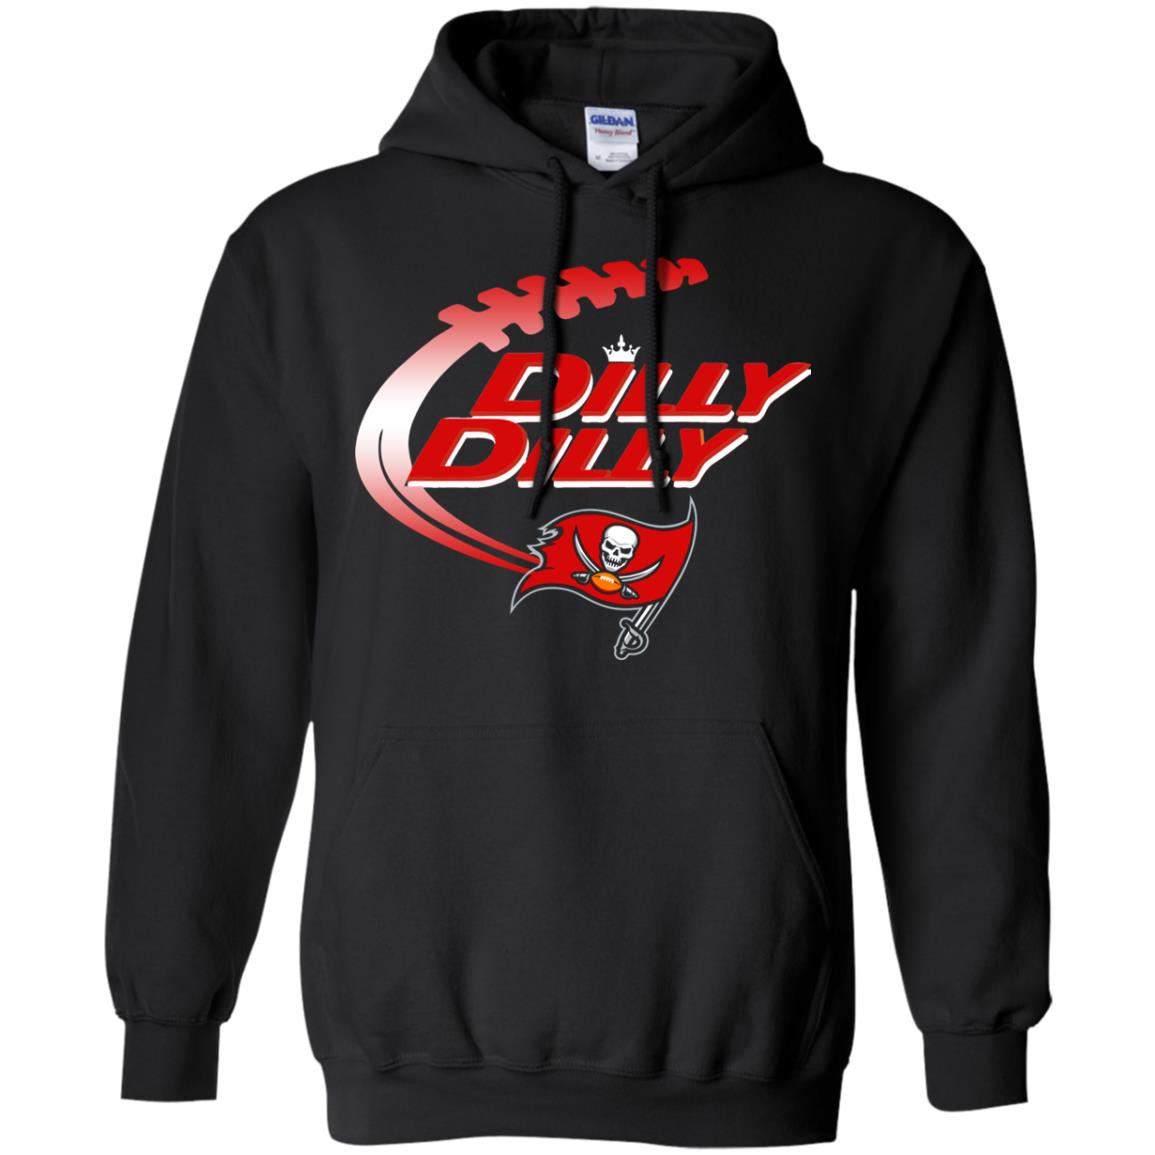 image 1792 - Dilly Dilly Tampa Bay Buccaneers Shirt, Sweatshirts, Hoodie